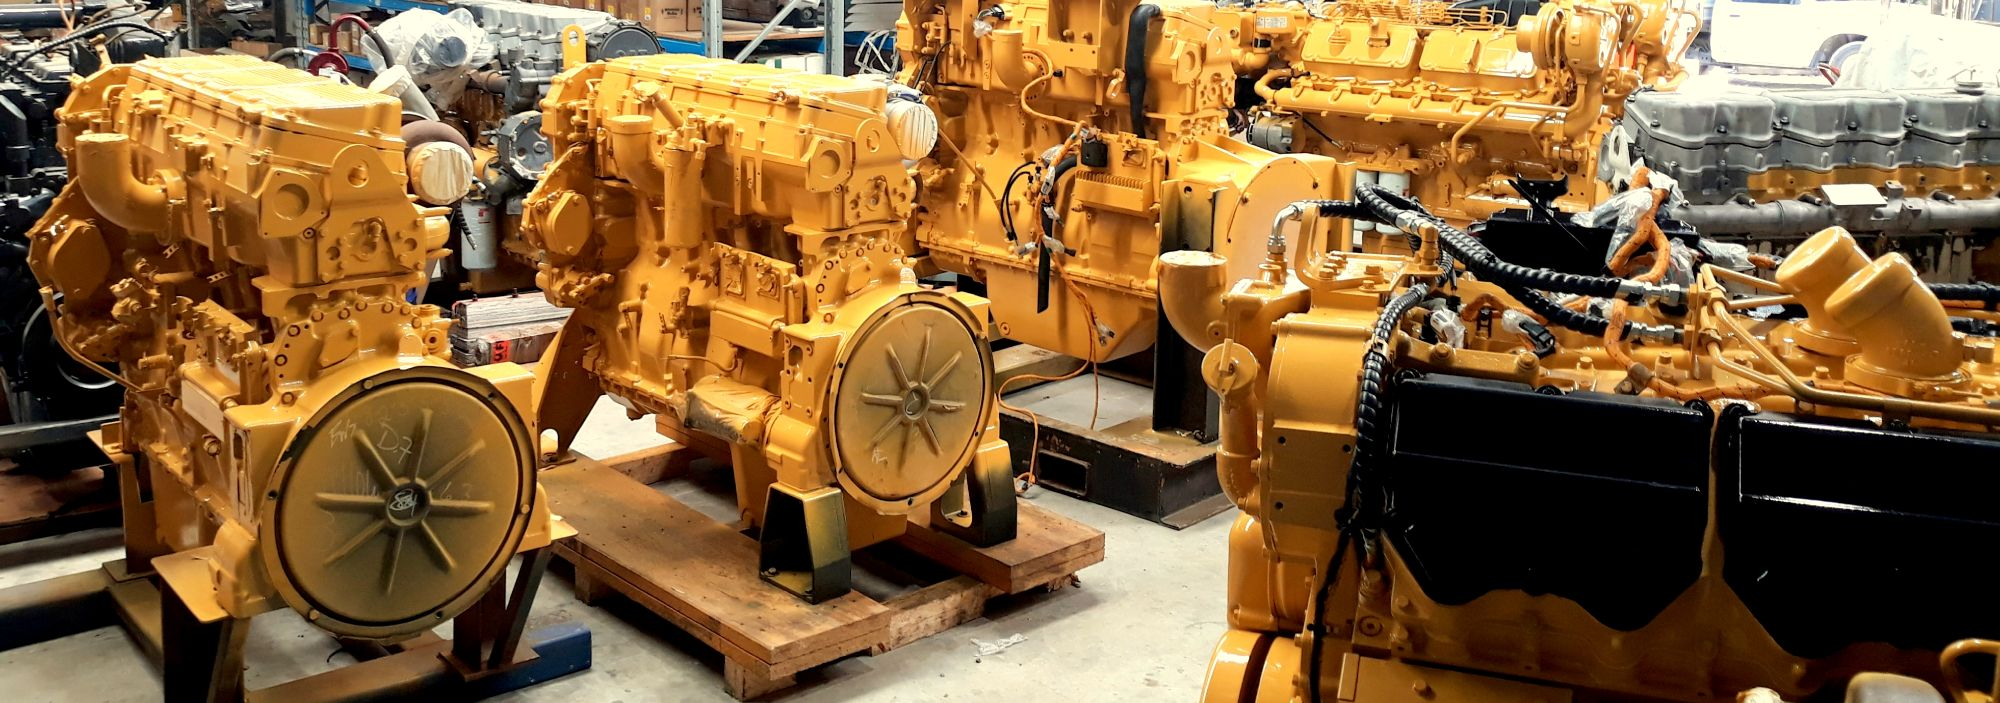 Caterpillar® & Cummins Engine Remanufacturers in Perth, Australia